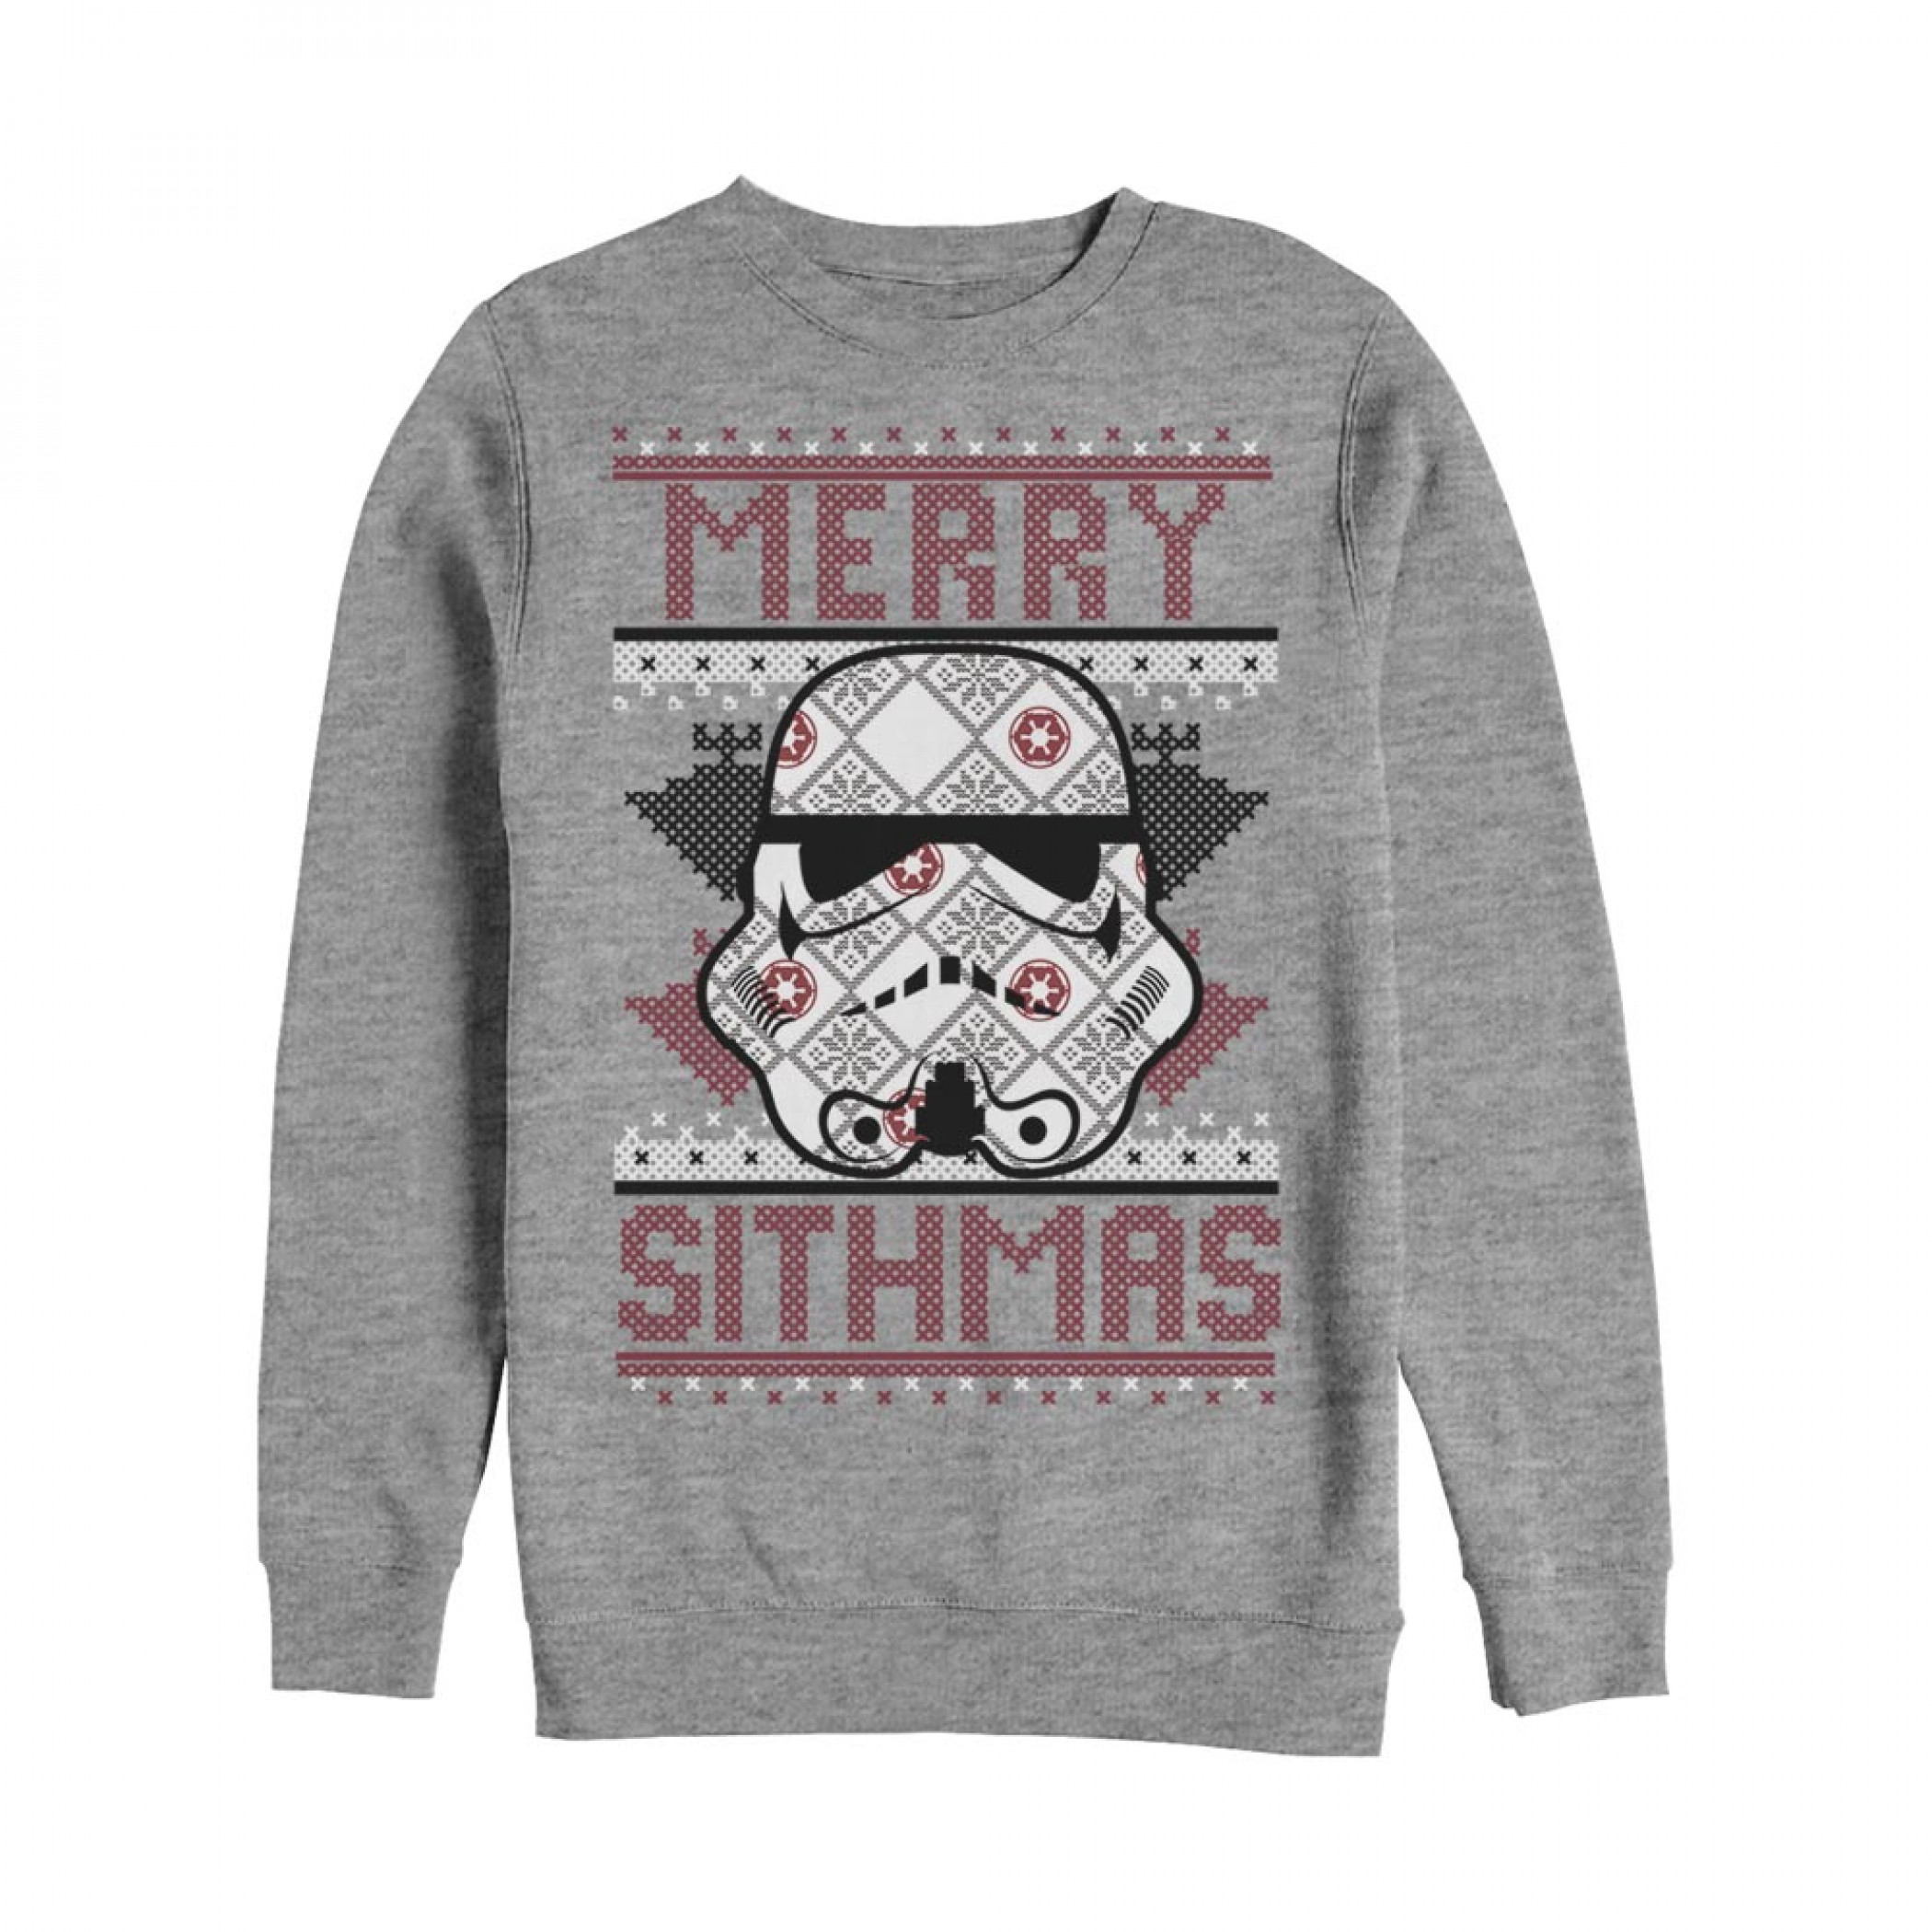 Star Wars Merry Sithmas Ugly Christmas Sweatshirt